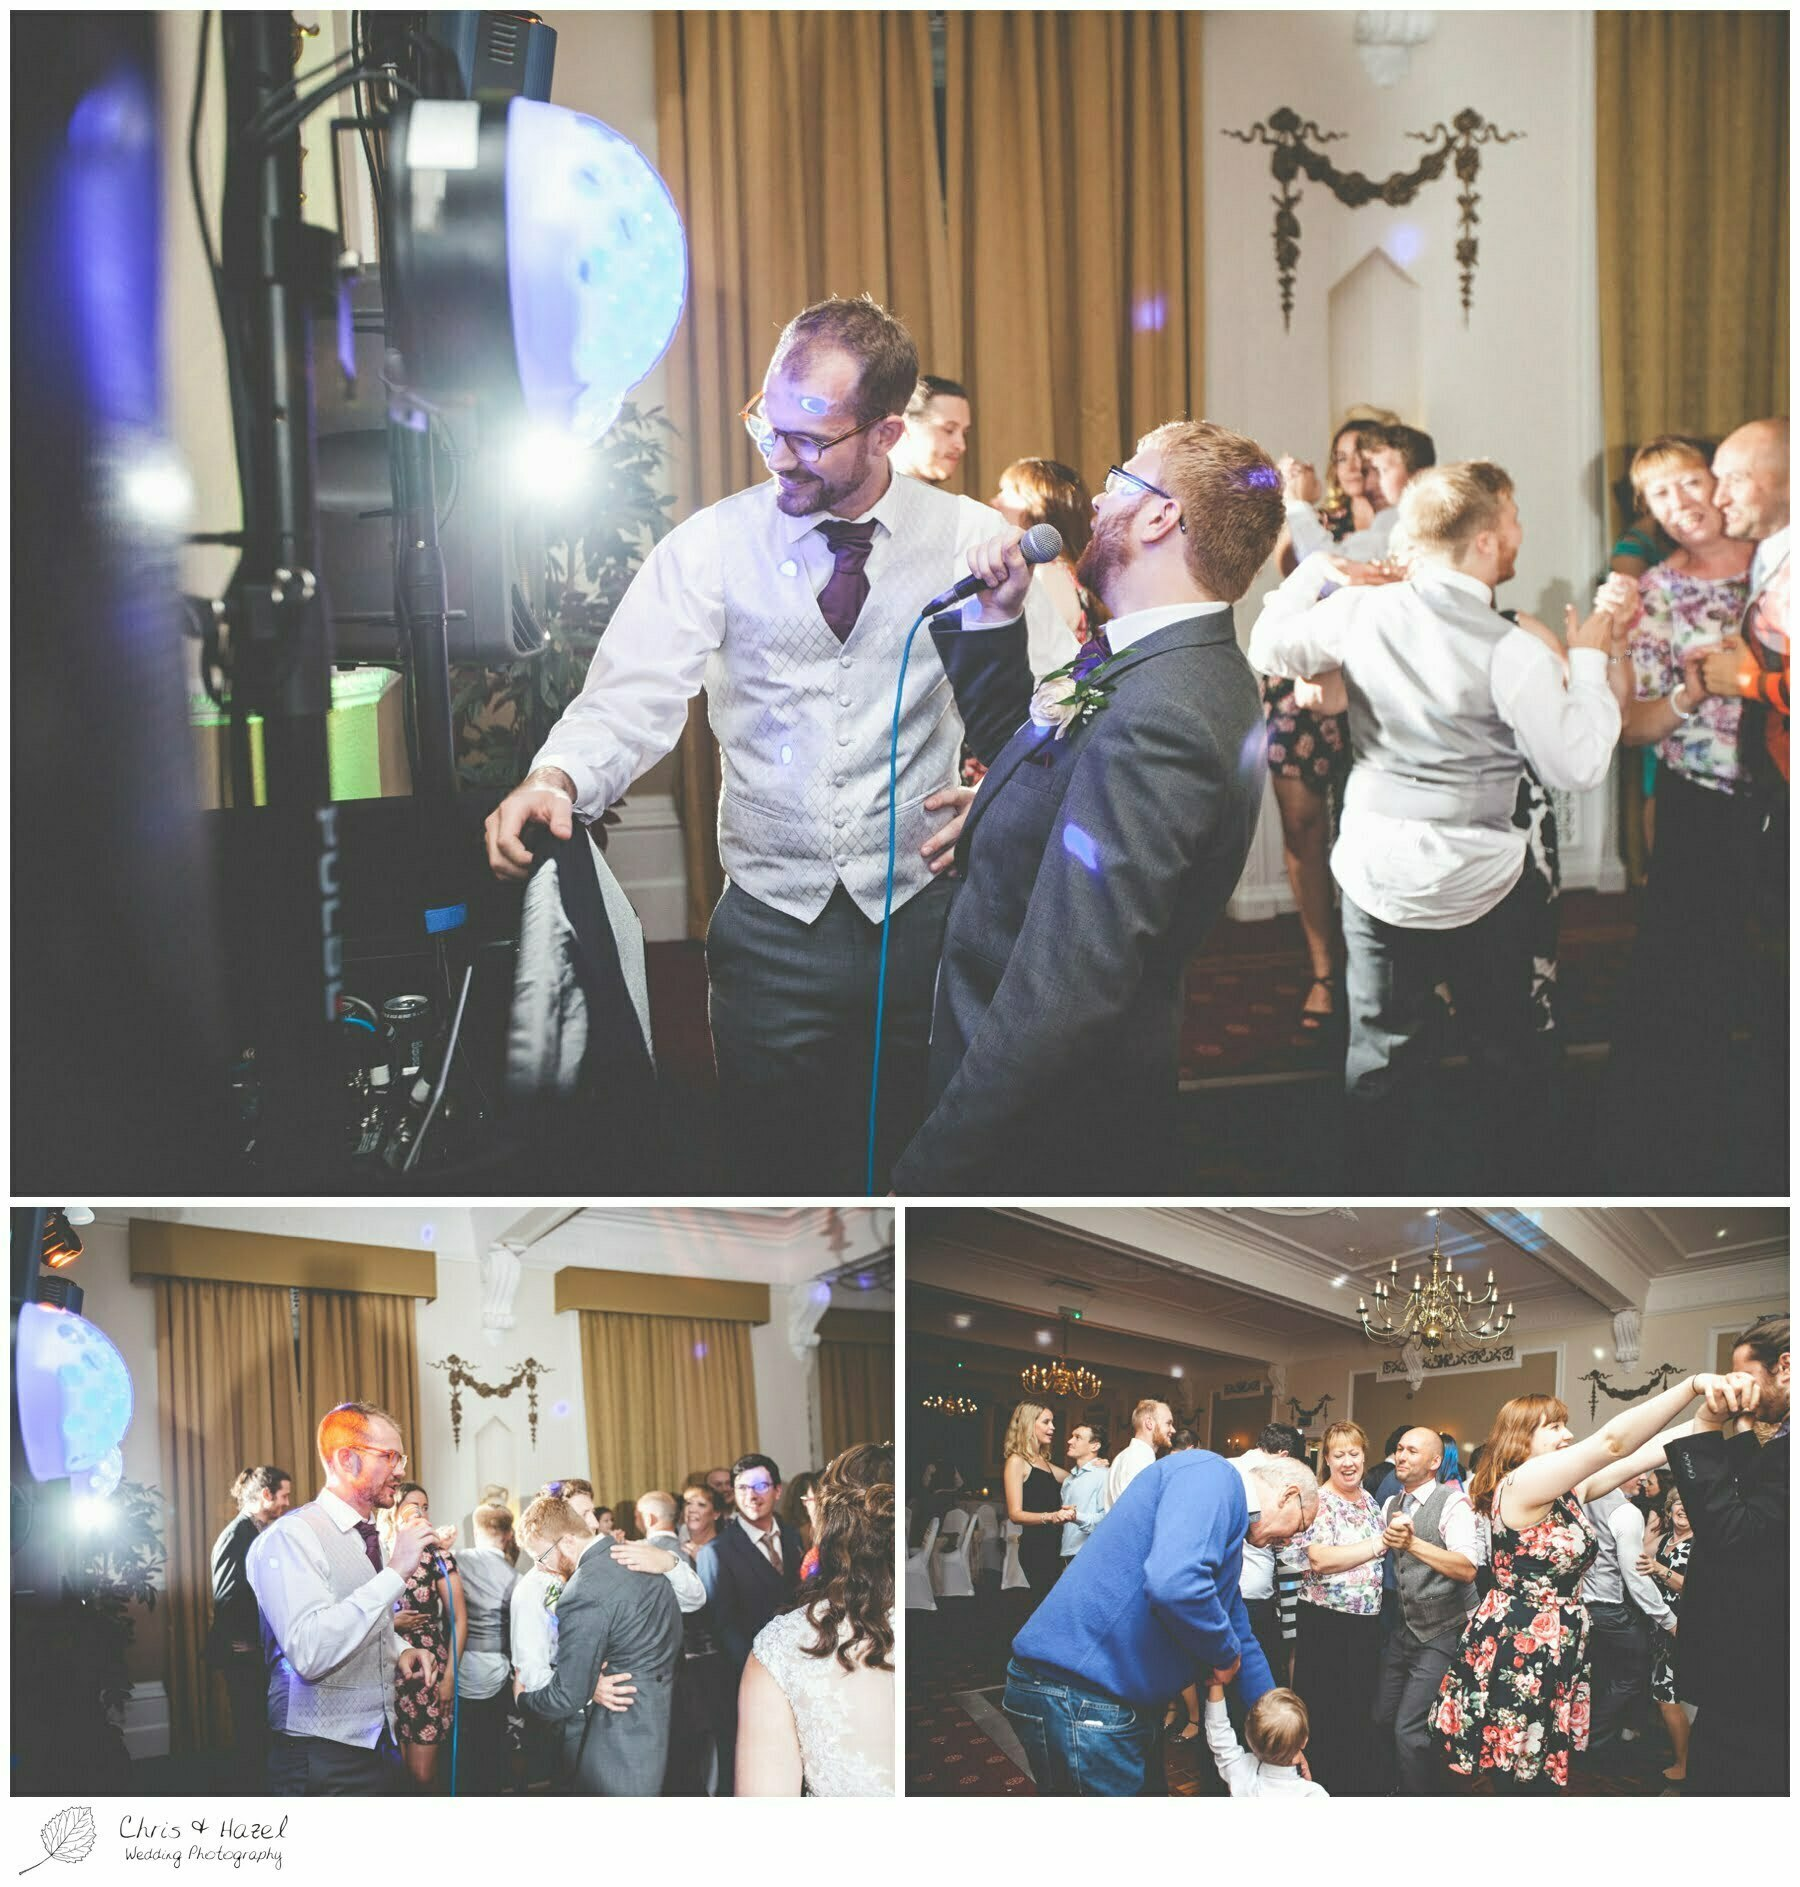 groom singing, best man singing, wedding singer, wedding guests dancing, wedding evening reception, wedding guests mingling, documentary wedding photography, Ilkley wedding photographer, Ilkley wedding photography, The Craiglands hotel wedding photography, west Yorkshire wedding photography, chris and hazel wedding photography, emily nunwick, sam nicholson, emily nicholson,